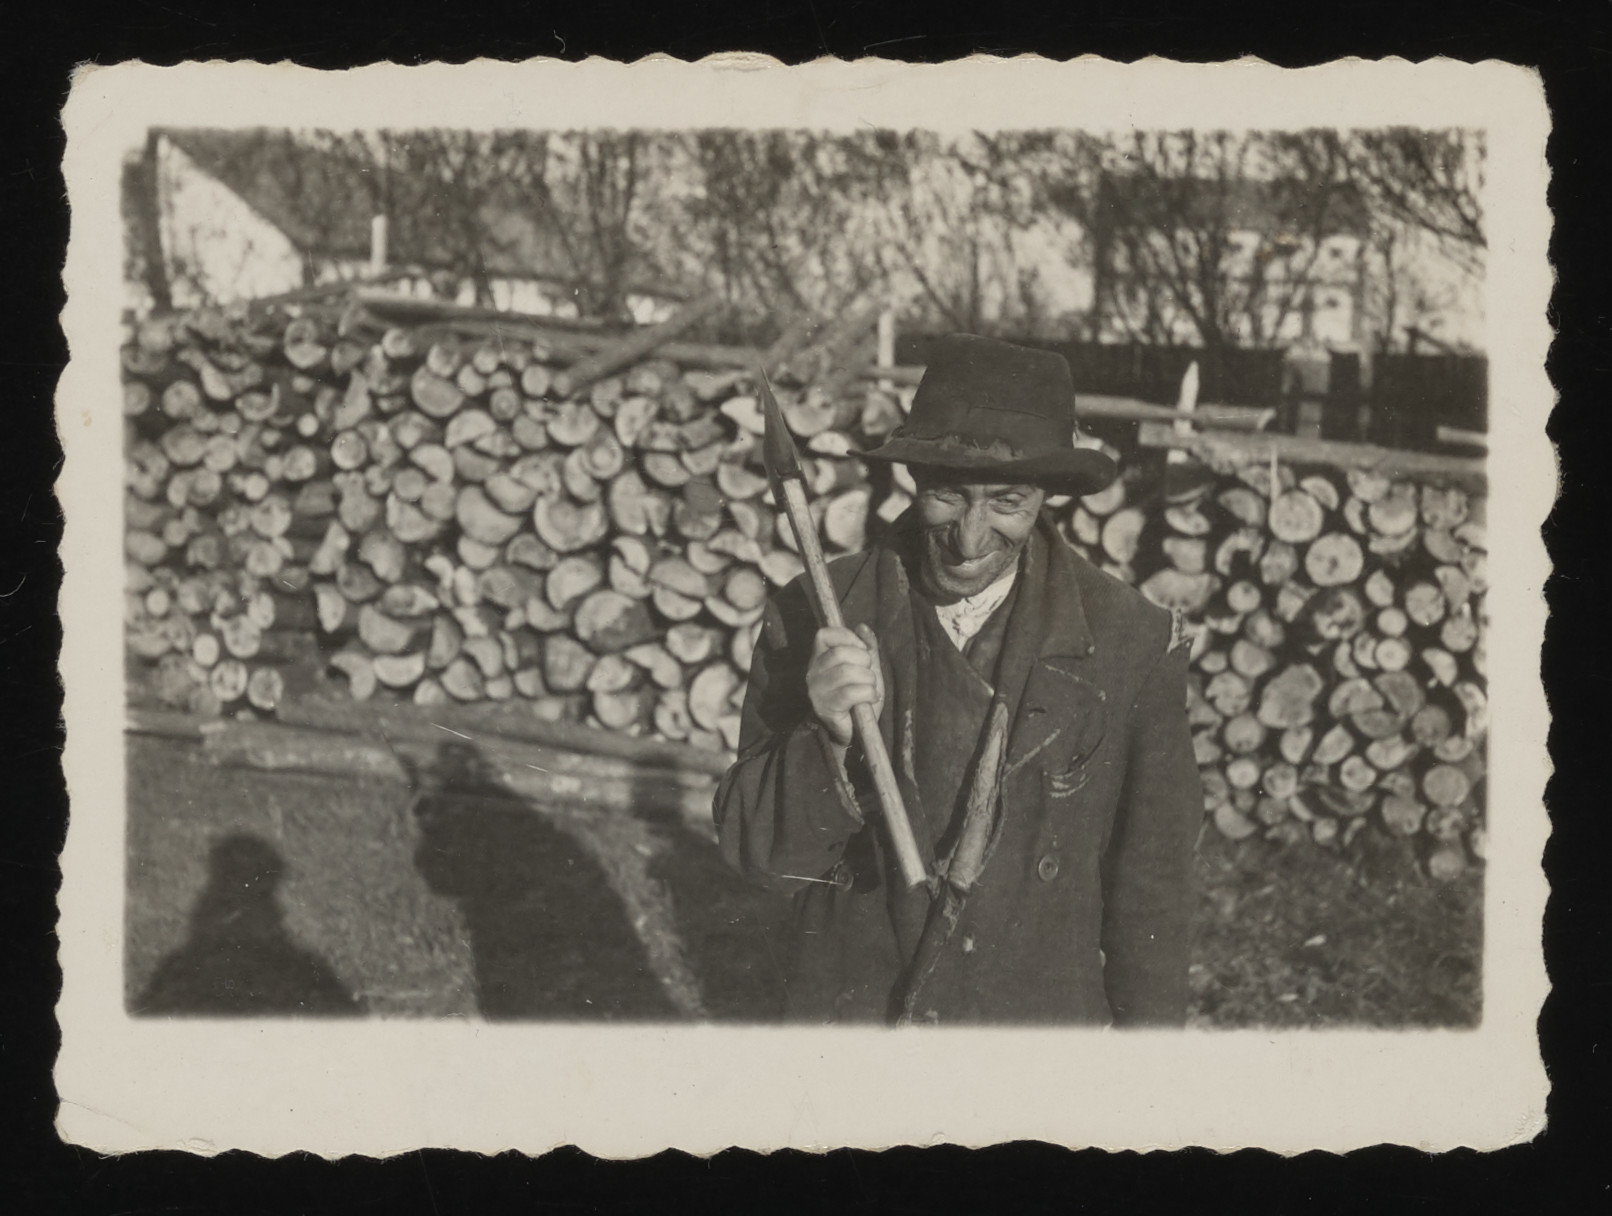 Portrait of Lejb Langweil holding an ax in front of a wood pile.    The Germans took pictures of Langweil to send home to their friends and family to show what a Jew looks like.  He worked as a cleaner at the police station. When three prominent Jews were forced to clean there, Langweil was told to supervise them. Instead, he did the work for them, saying that the work was unsuitable for men of their stature.